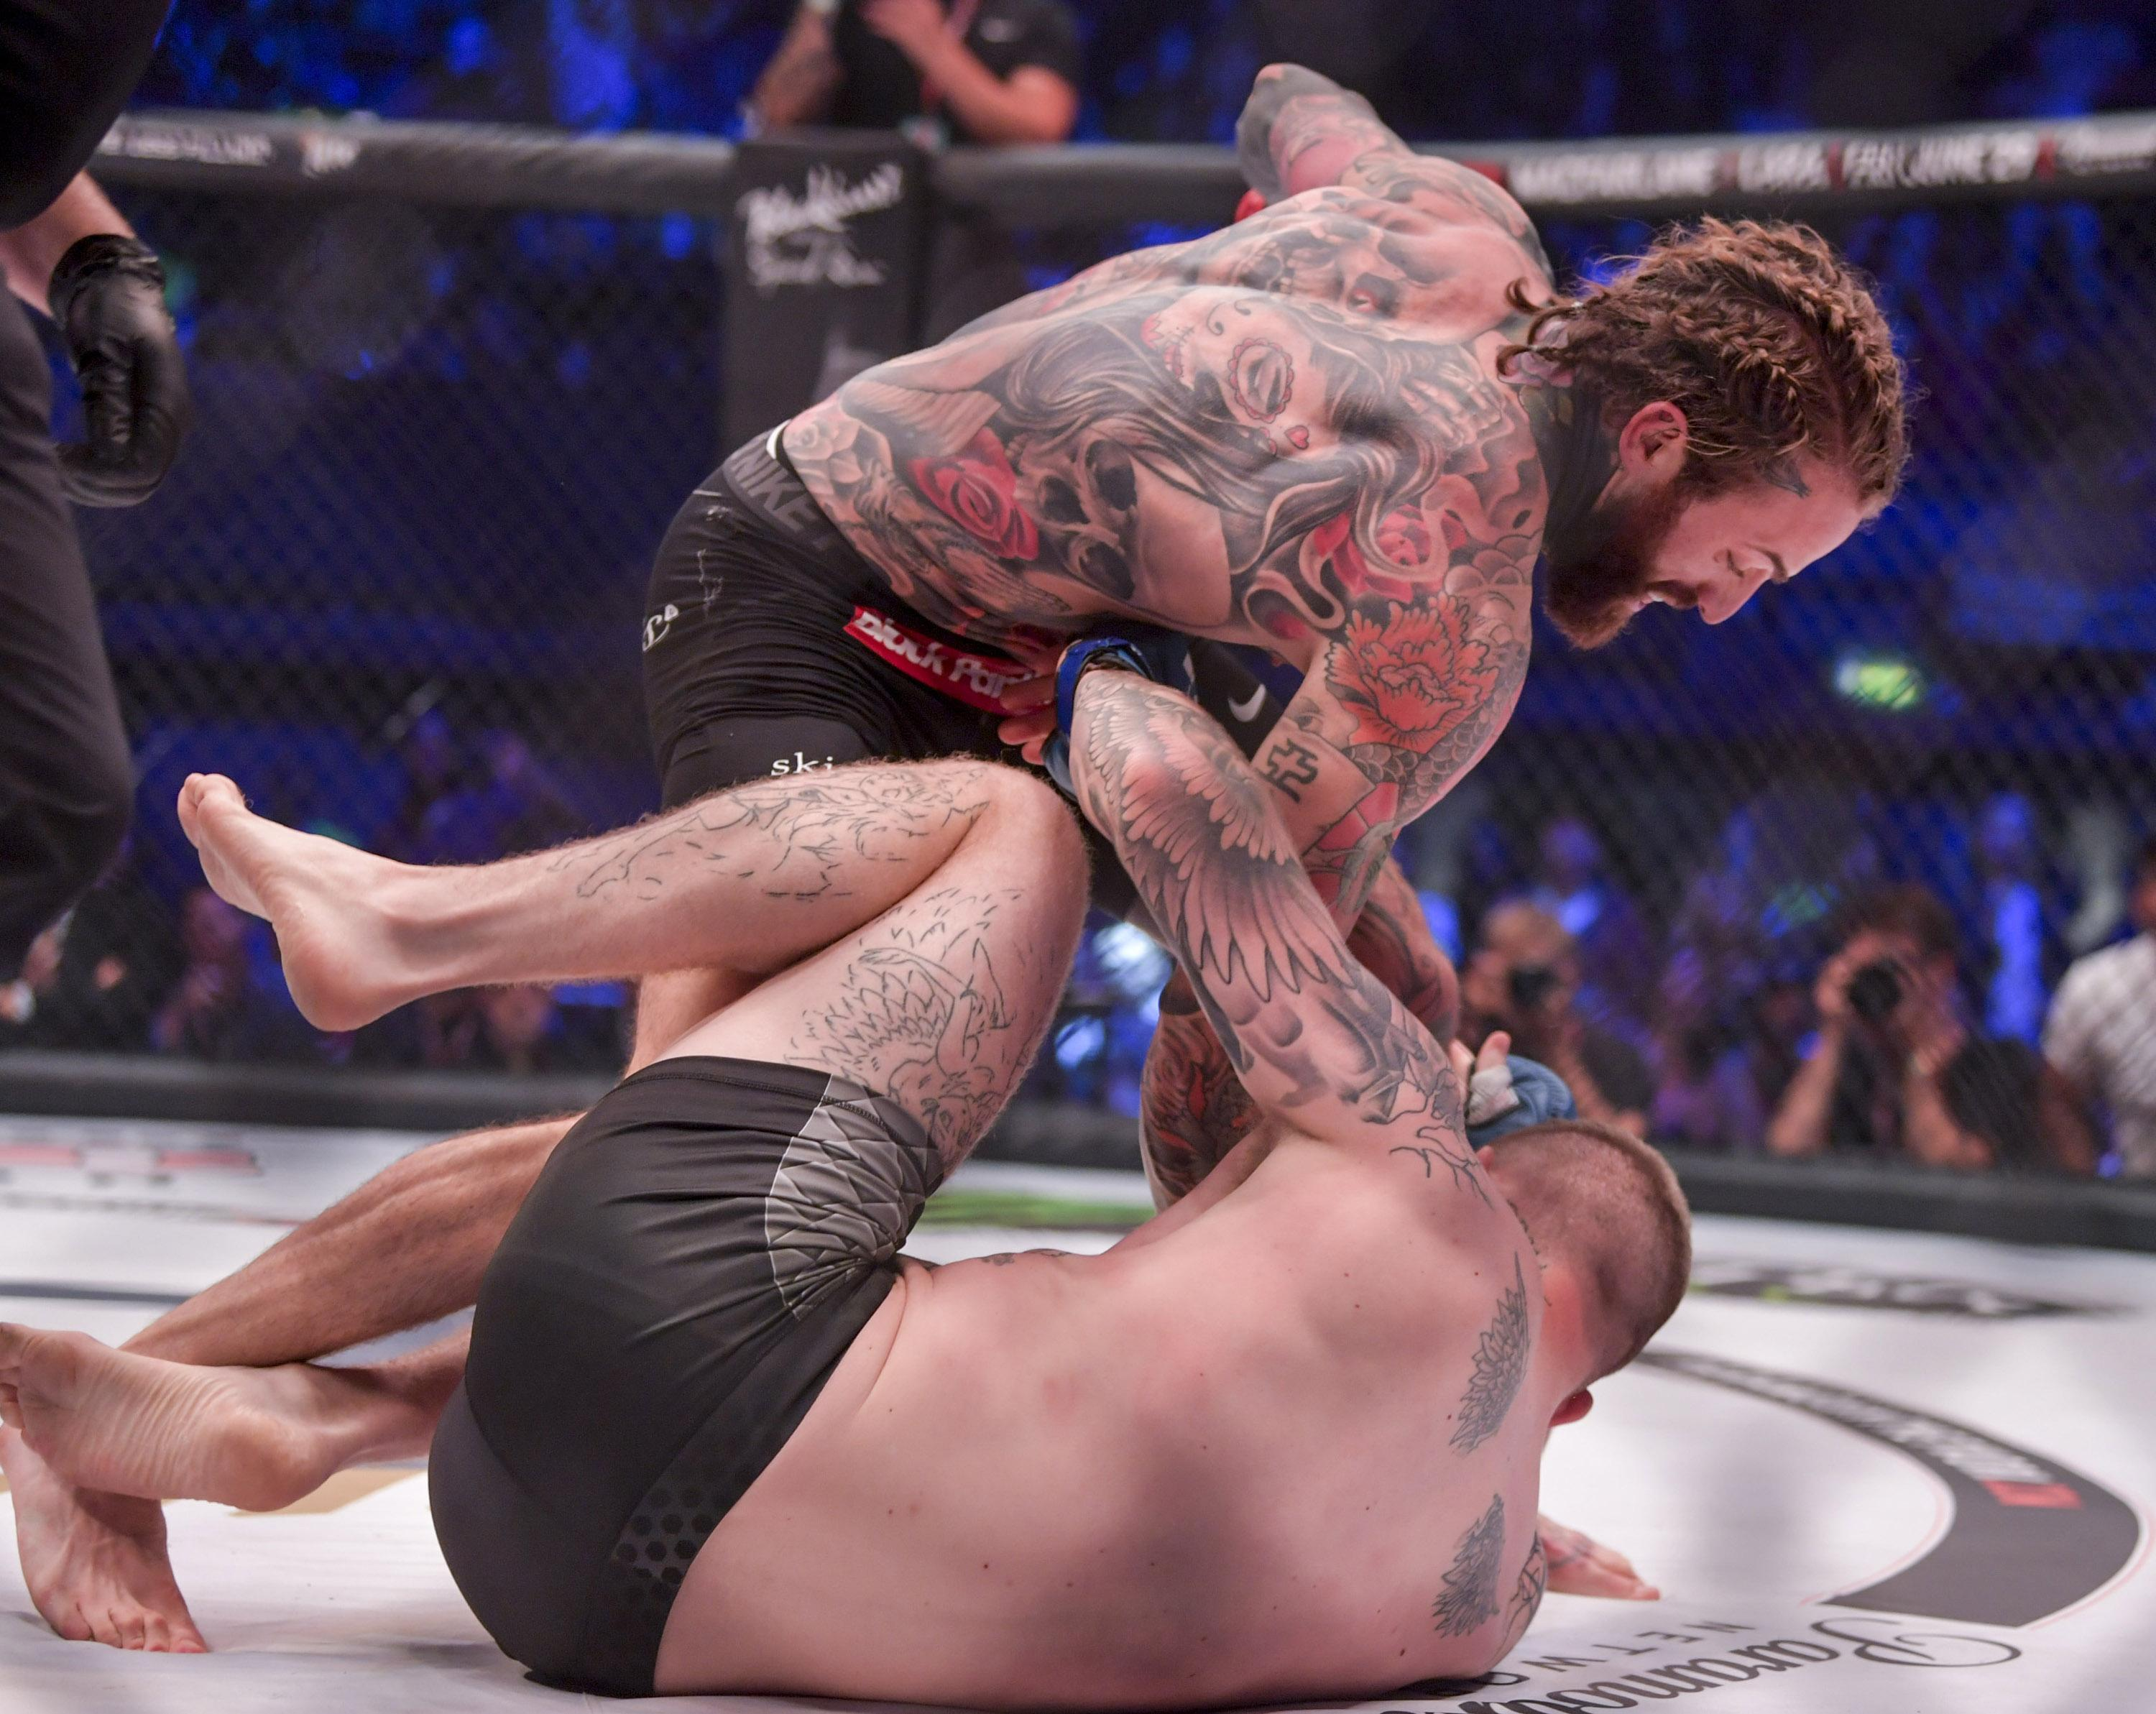 In Aaron Chalmers' last fight he made his Bellator MMA debut